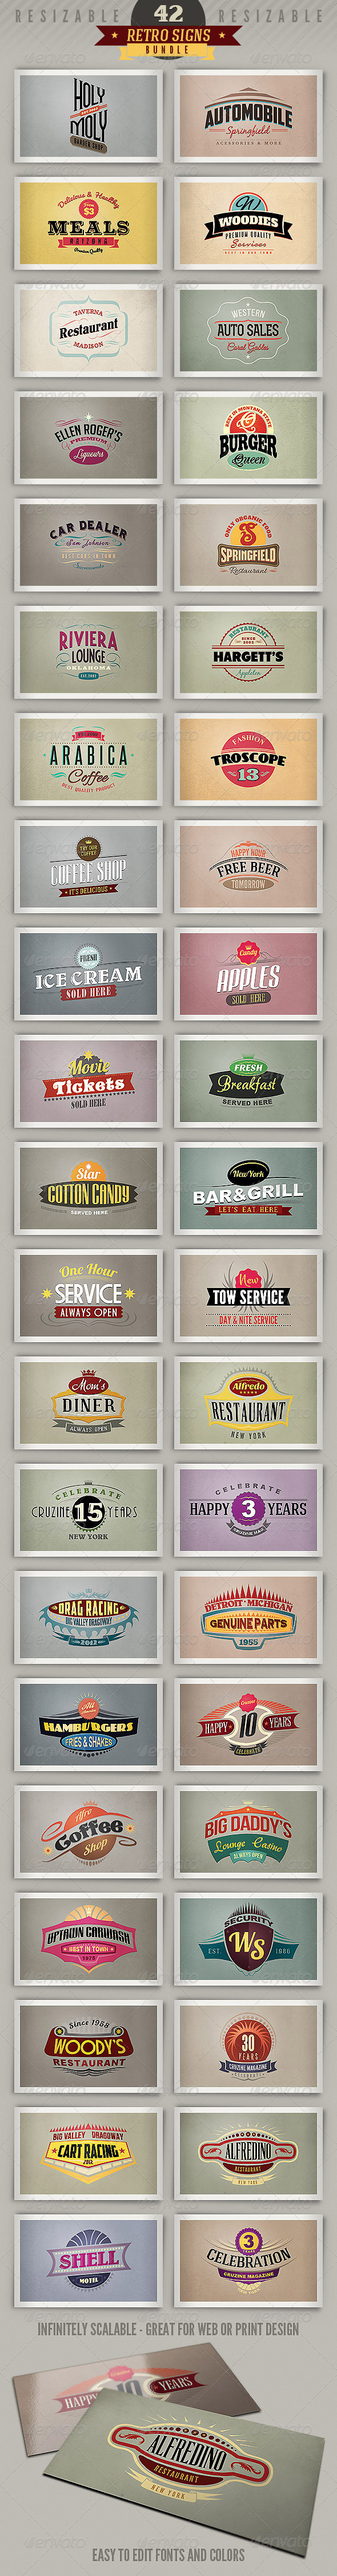 GraphicRiver 42 Retro Signs or Banners Bundle 4116200